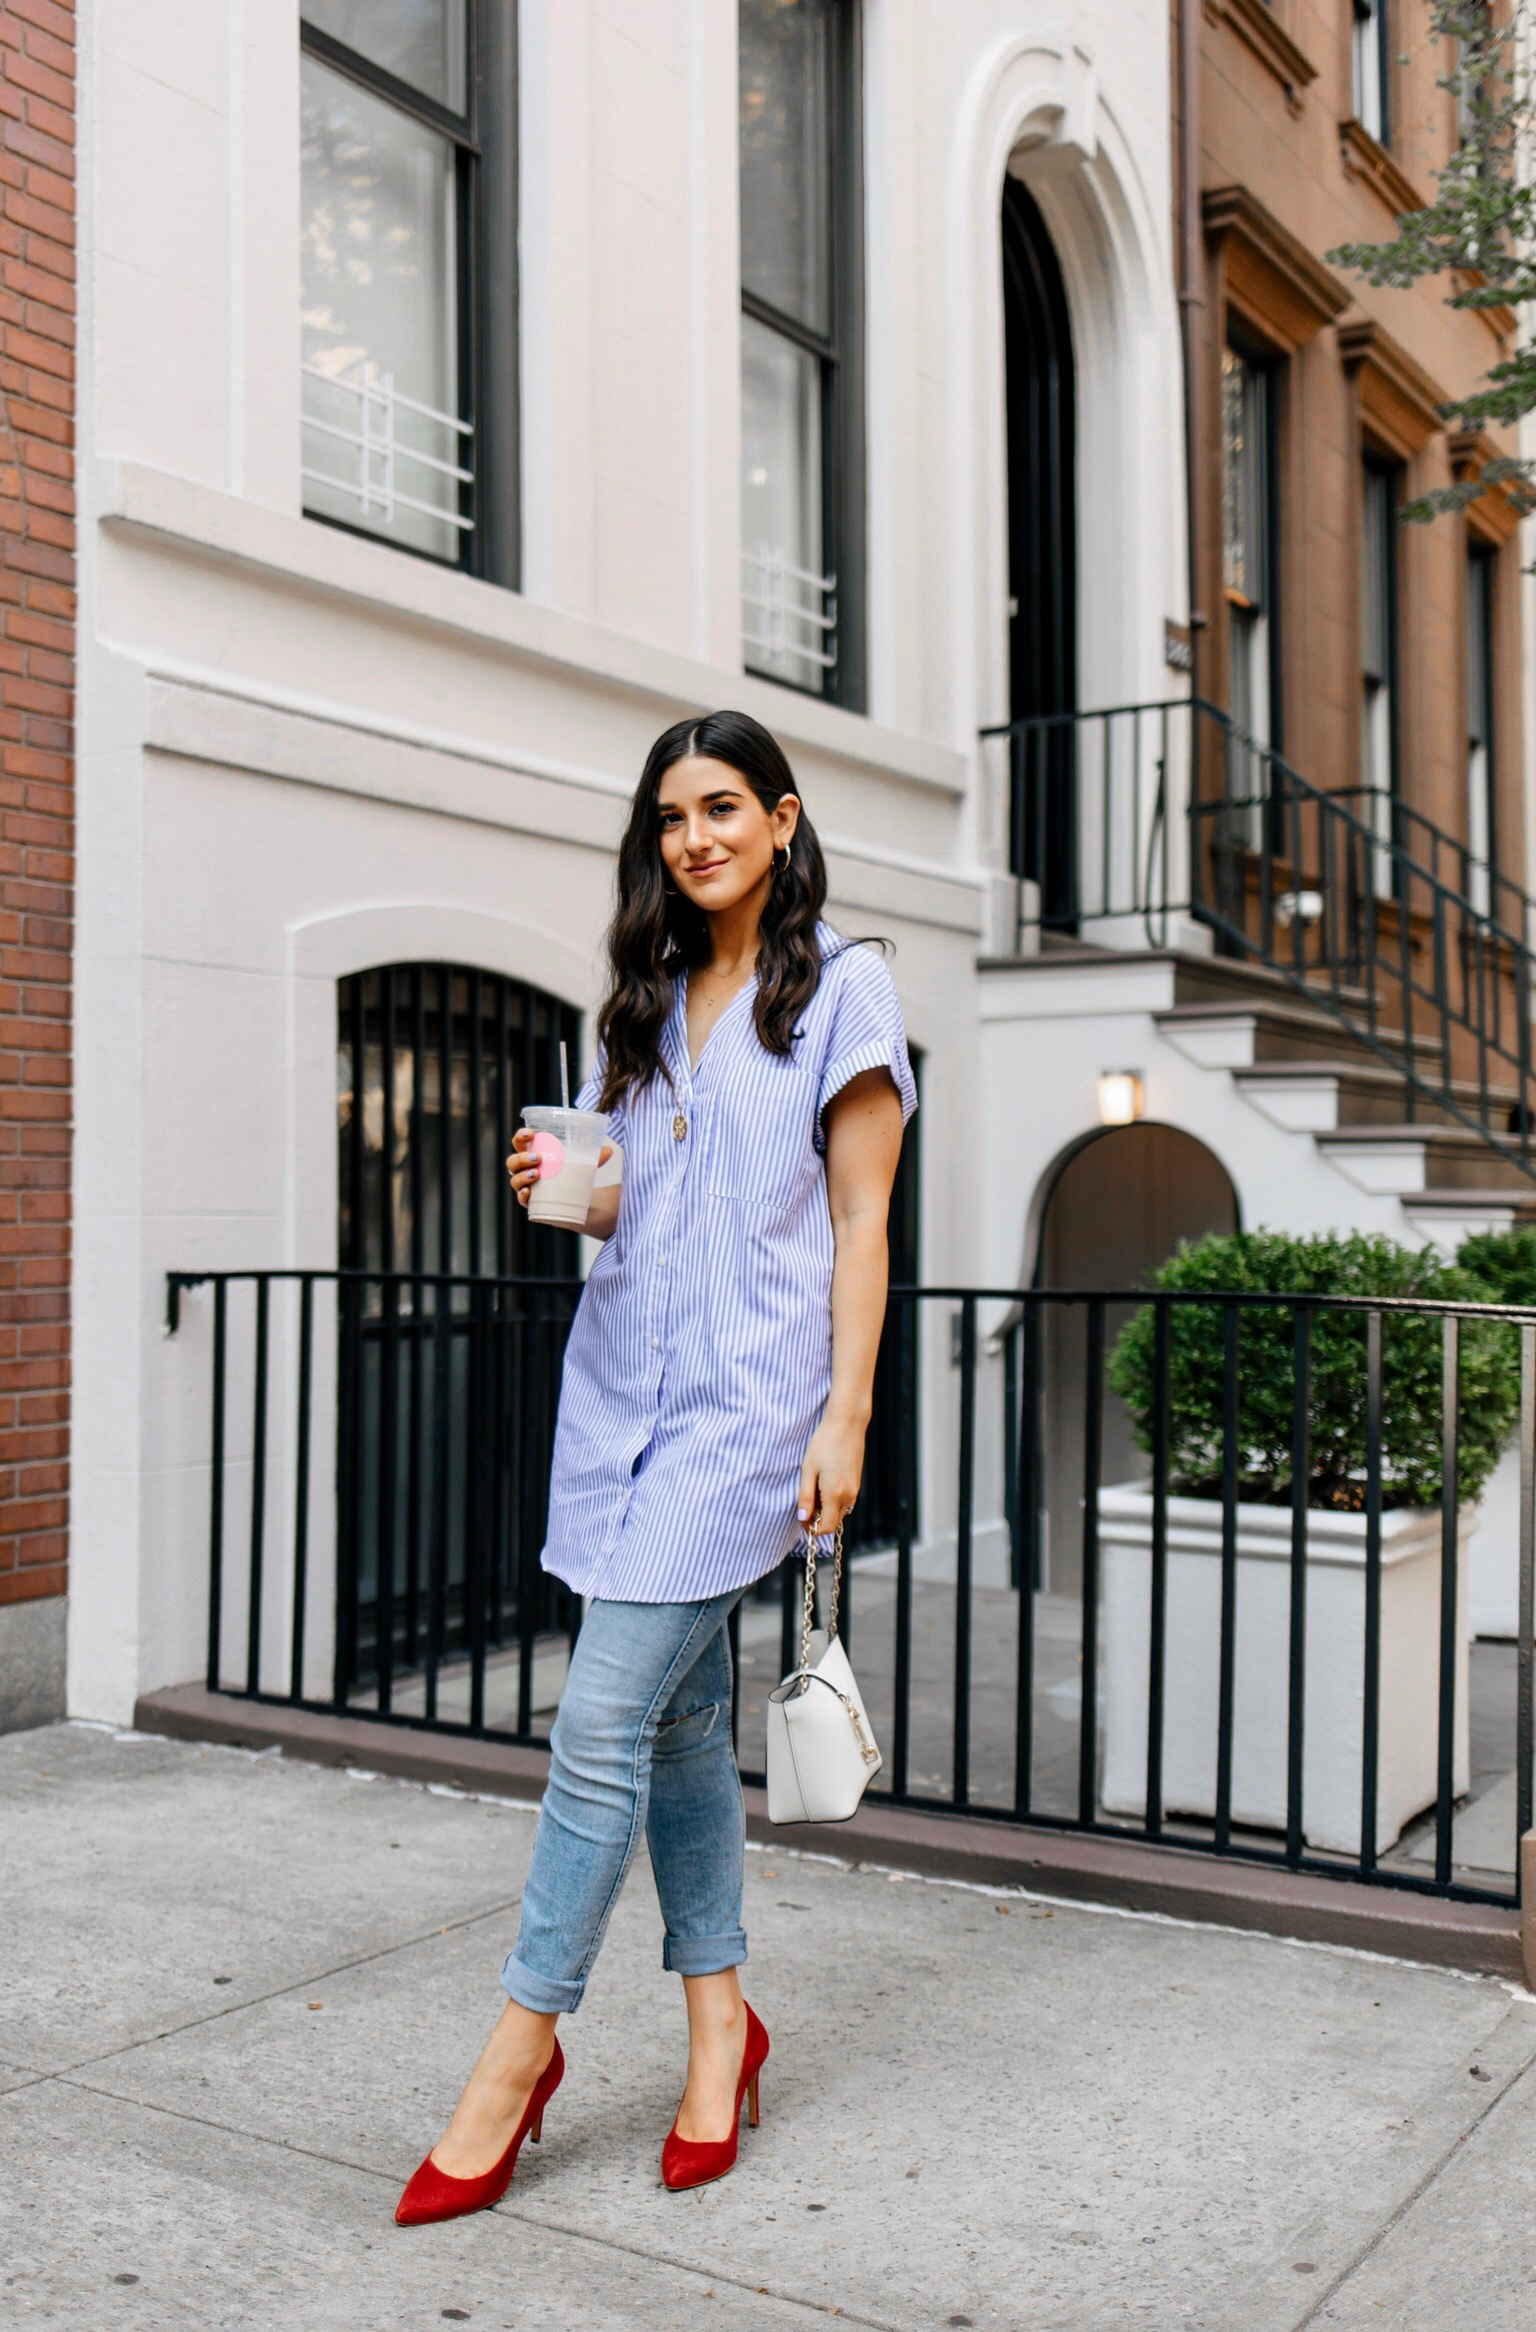 No Is A Dirty Dirty Word A Satire Blue Striped Top Red Heels Esther Santer Fashion Blog NYC Street Style Blogger Outfit OOTD Trendy By Woops Macaron Shop Light  Denim Jeans Gold Jewelry Details Shoes Zara Shopping Wear Zac Posen Bag Coffee Break Girl.jpg